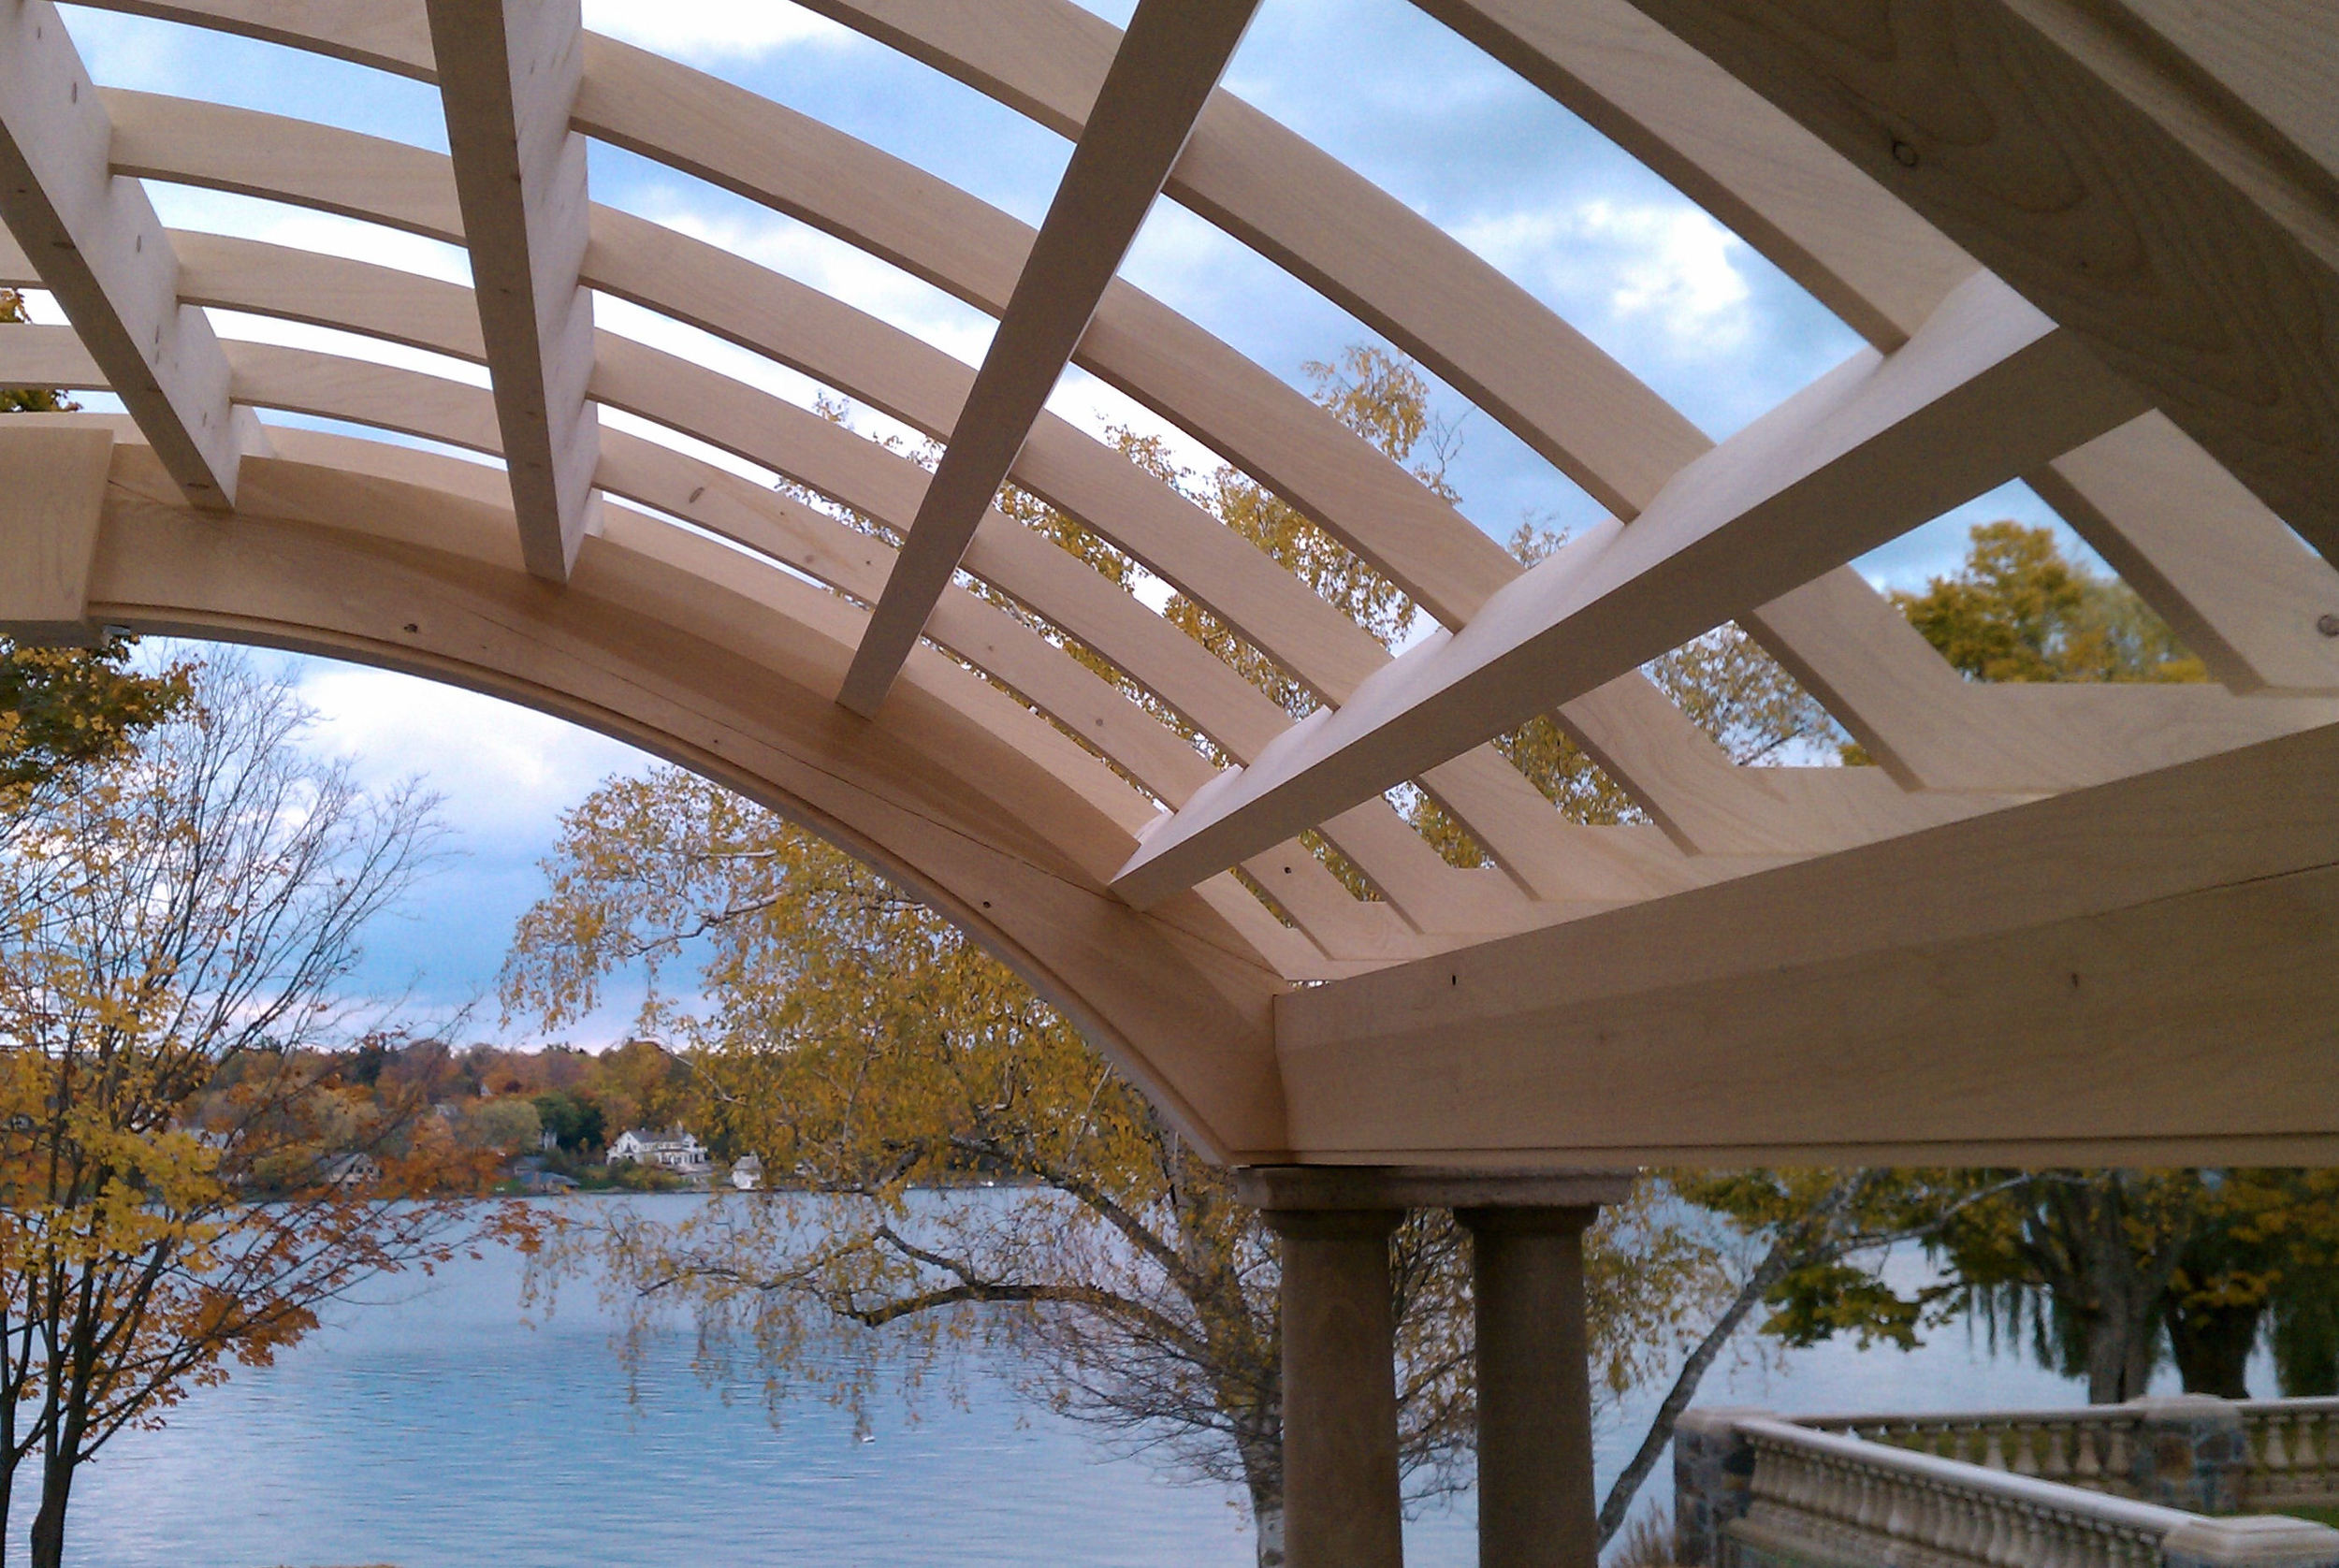 Port Orford cedar pergola with arbor